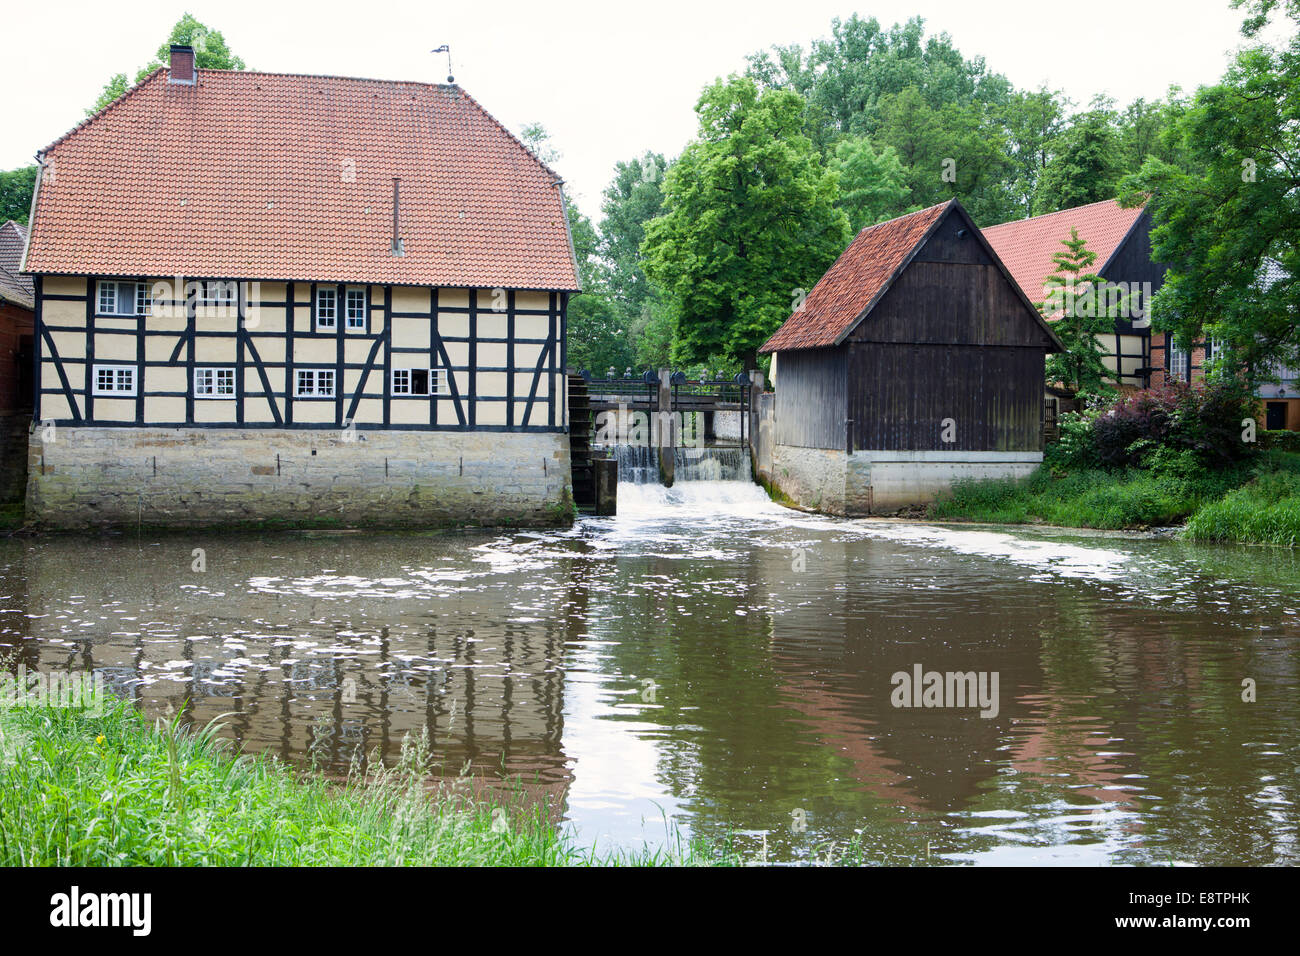 Water mill, river Ems, Rheda Castle, Rheda-Wiedenbrueck, Muensterland region, North Rhine-Westphalia, Germany, Europe, - Stock Image